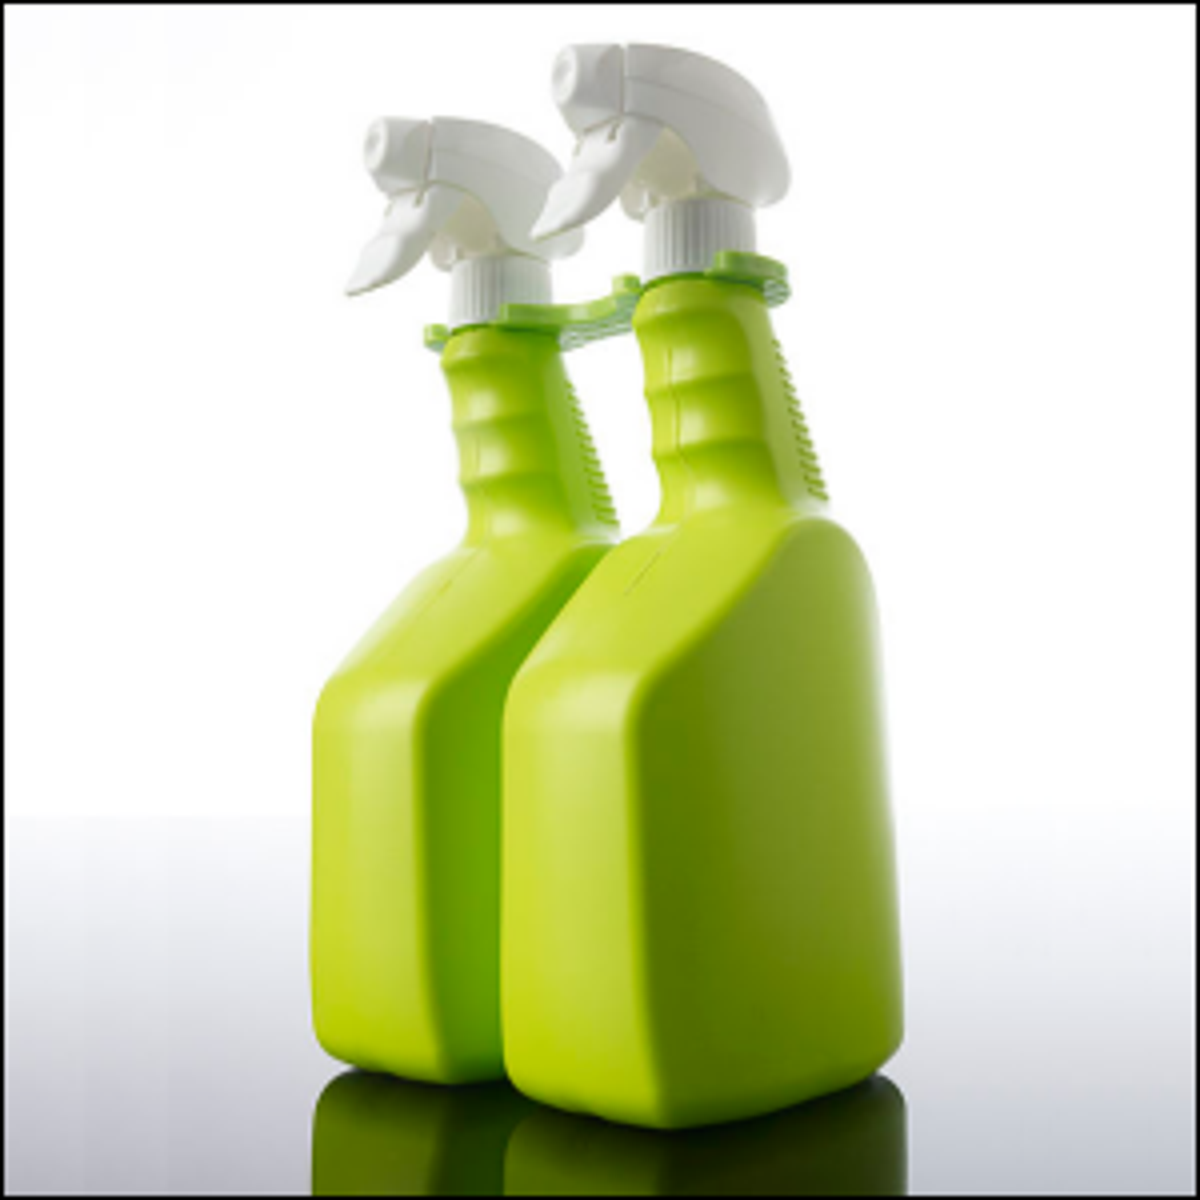 A pair of lime green spray bottles.